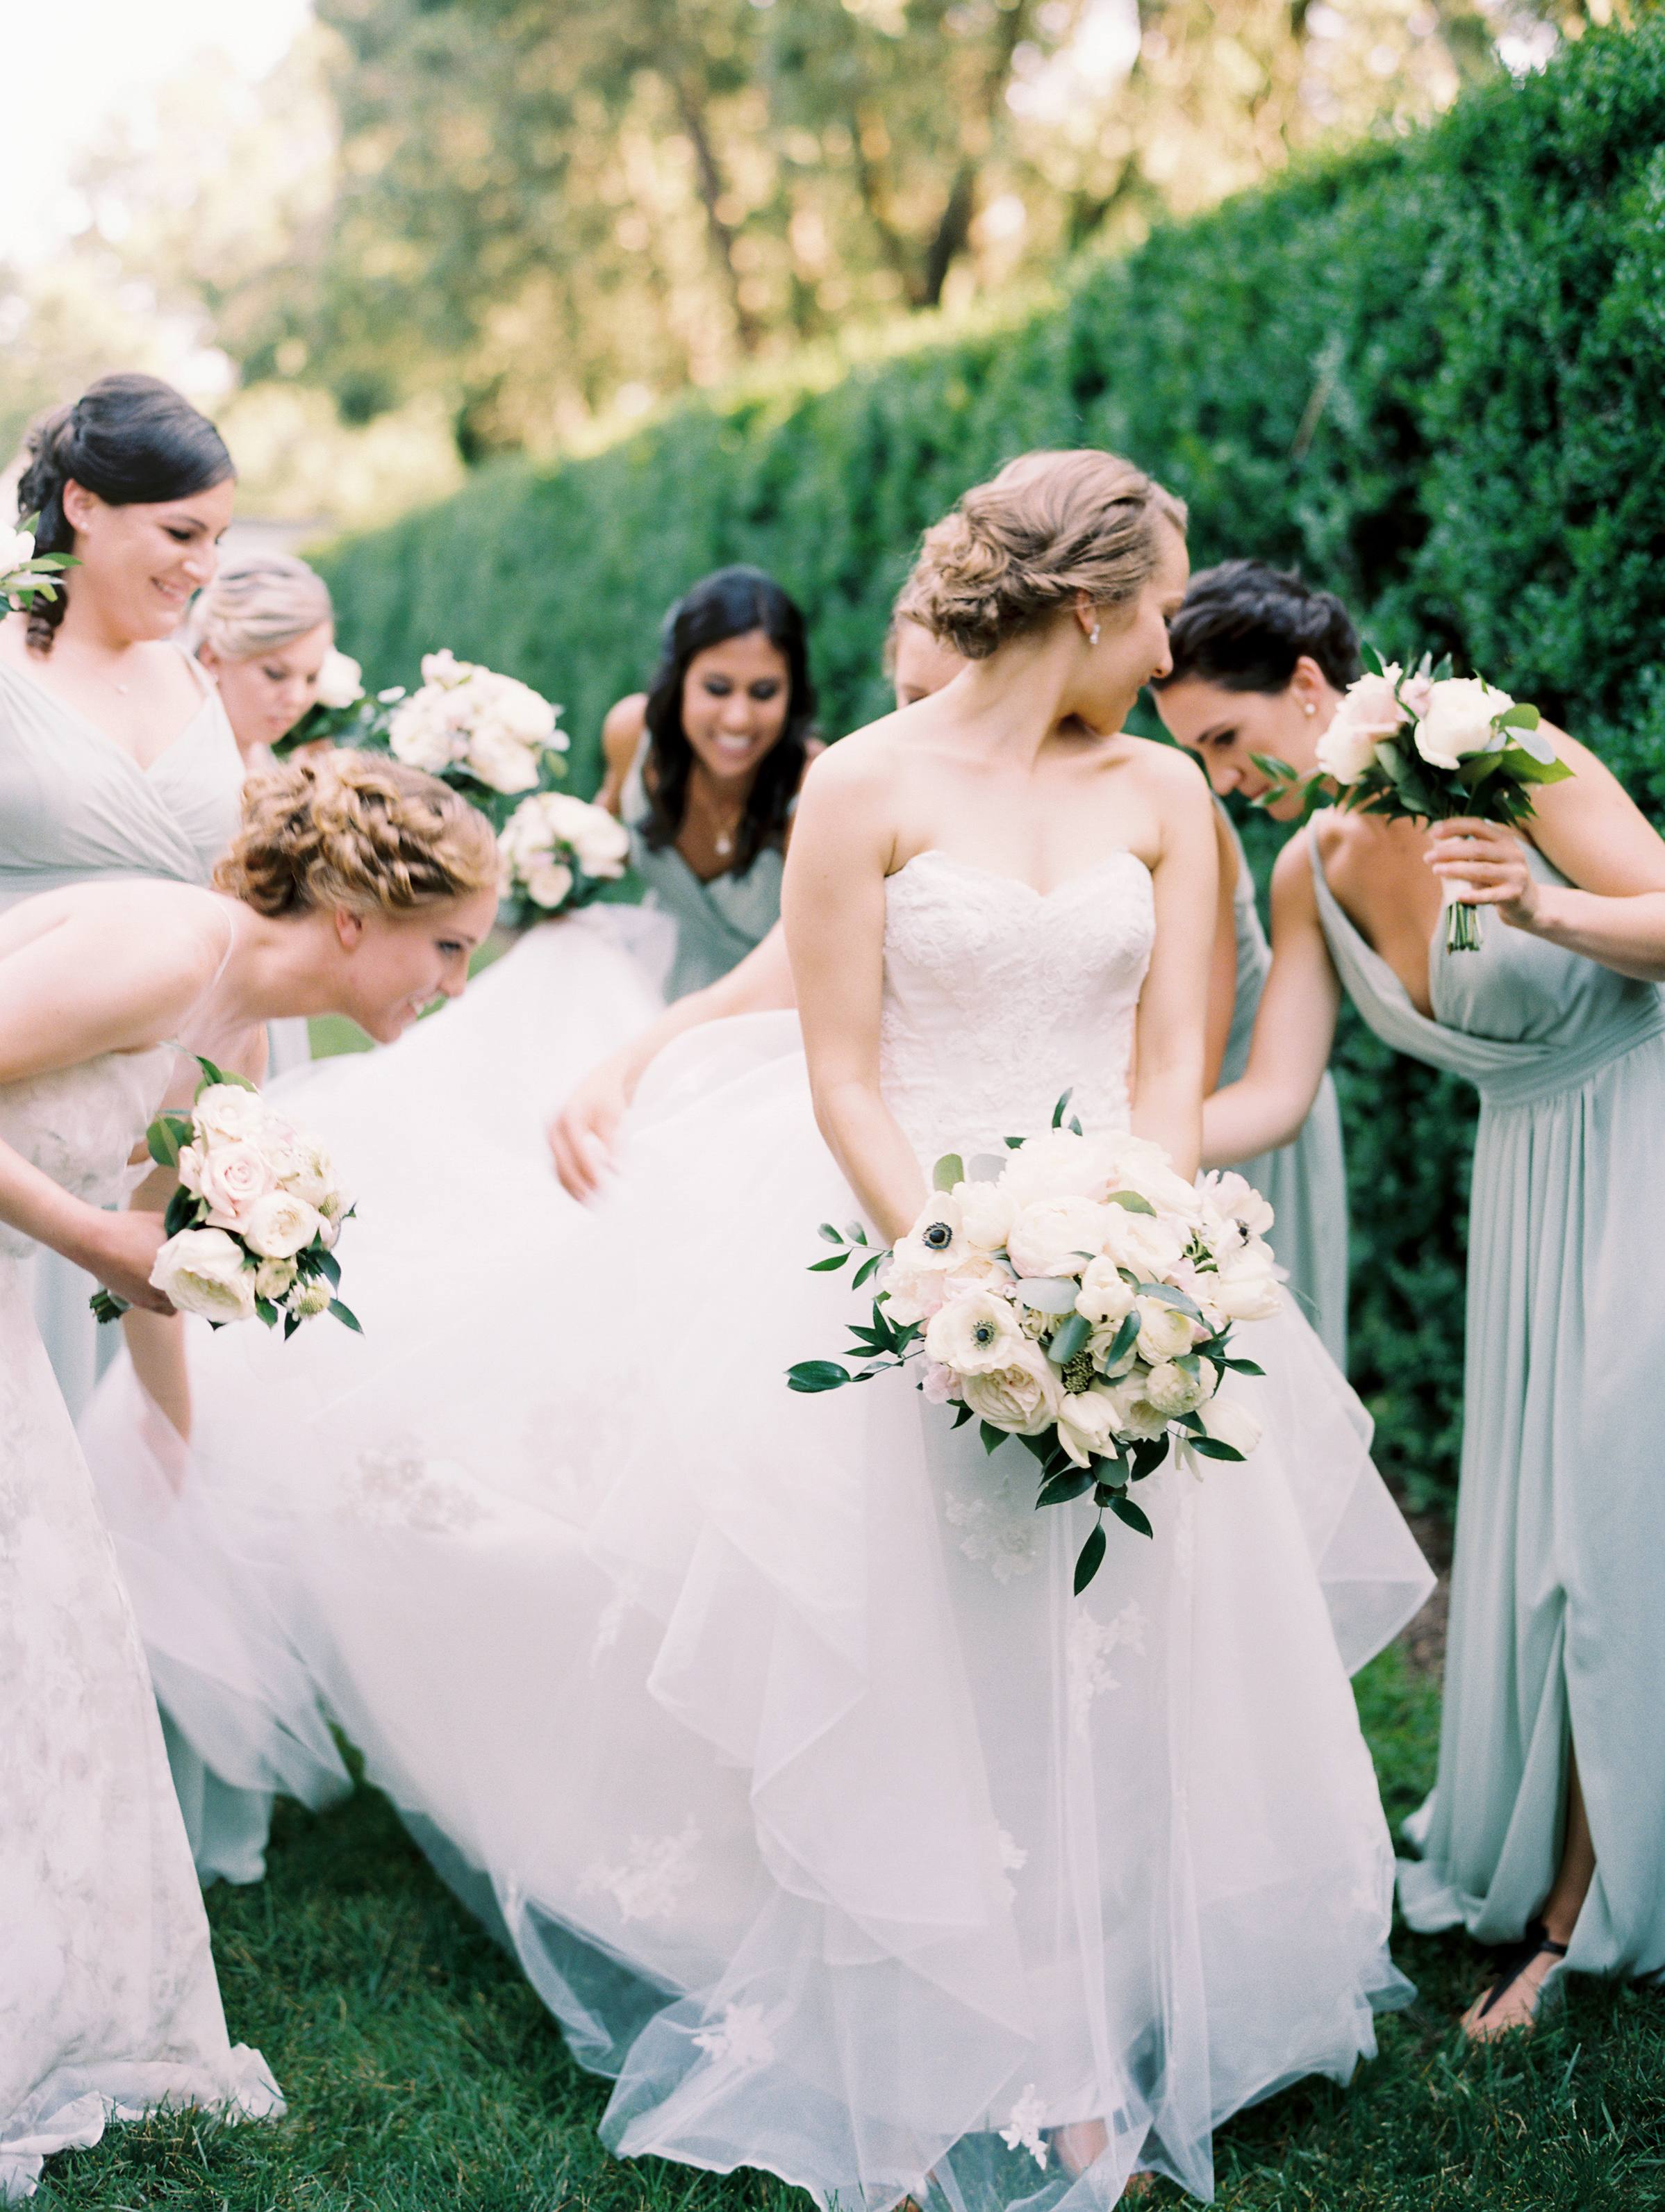 Photography by Lisa Zeising for Abby Jui with Roberts and Co. at Oatlands in Leesburg, Virginia.